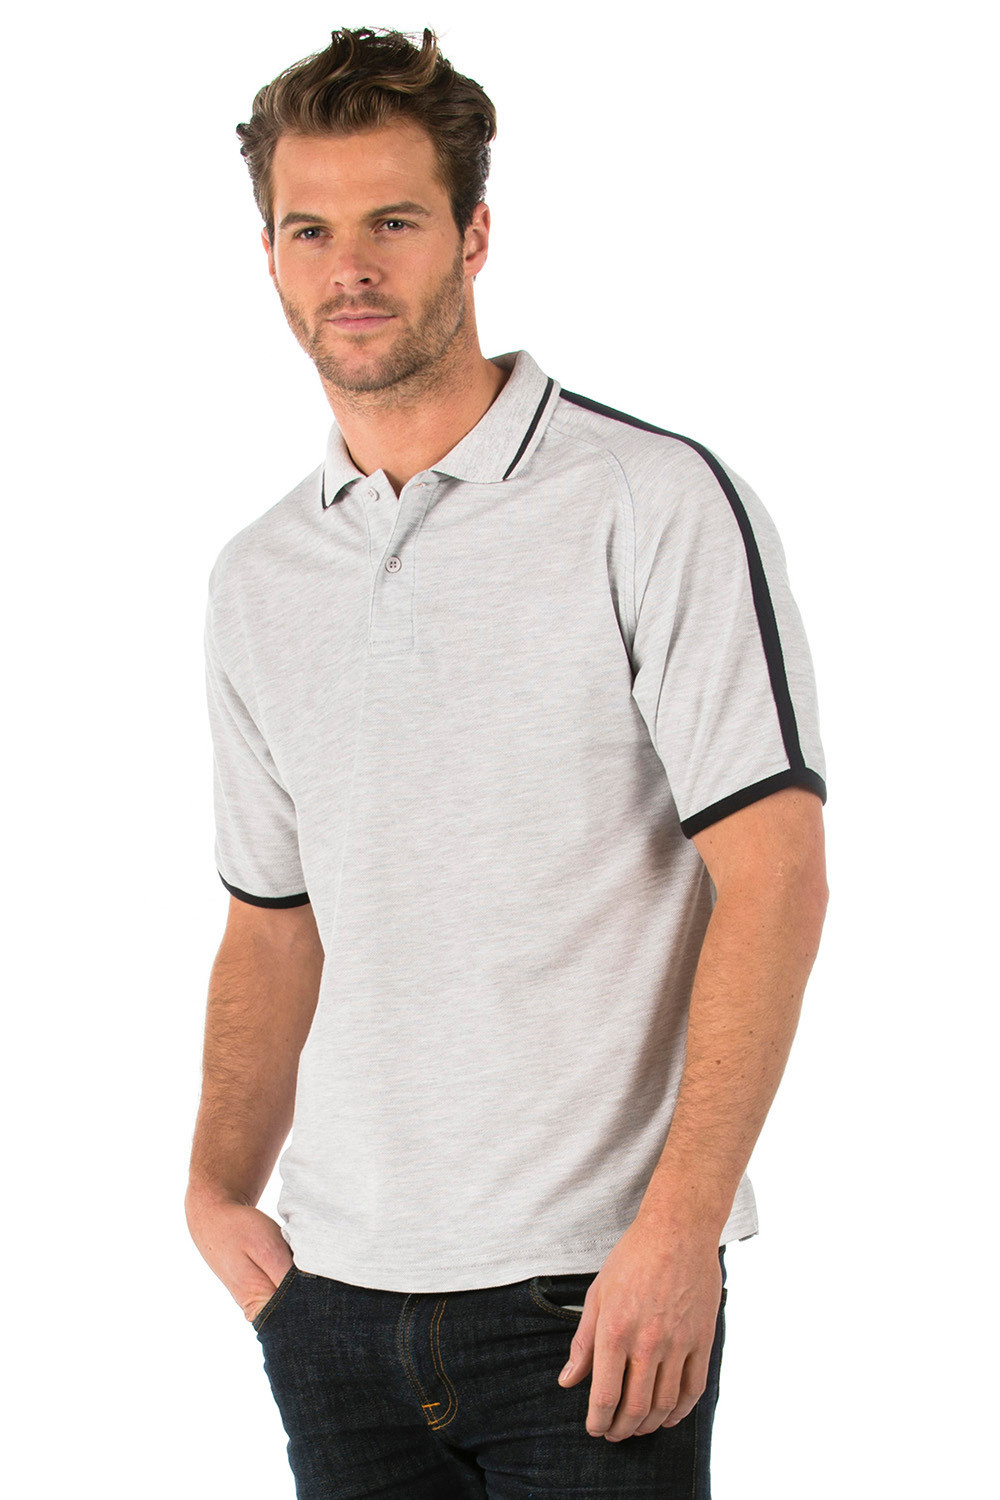 Heather Grey/Black Polo Shirt